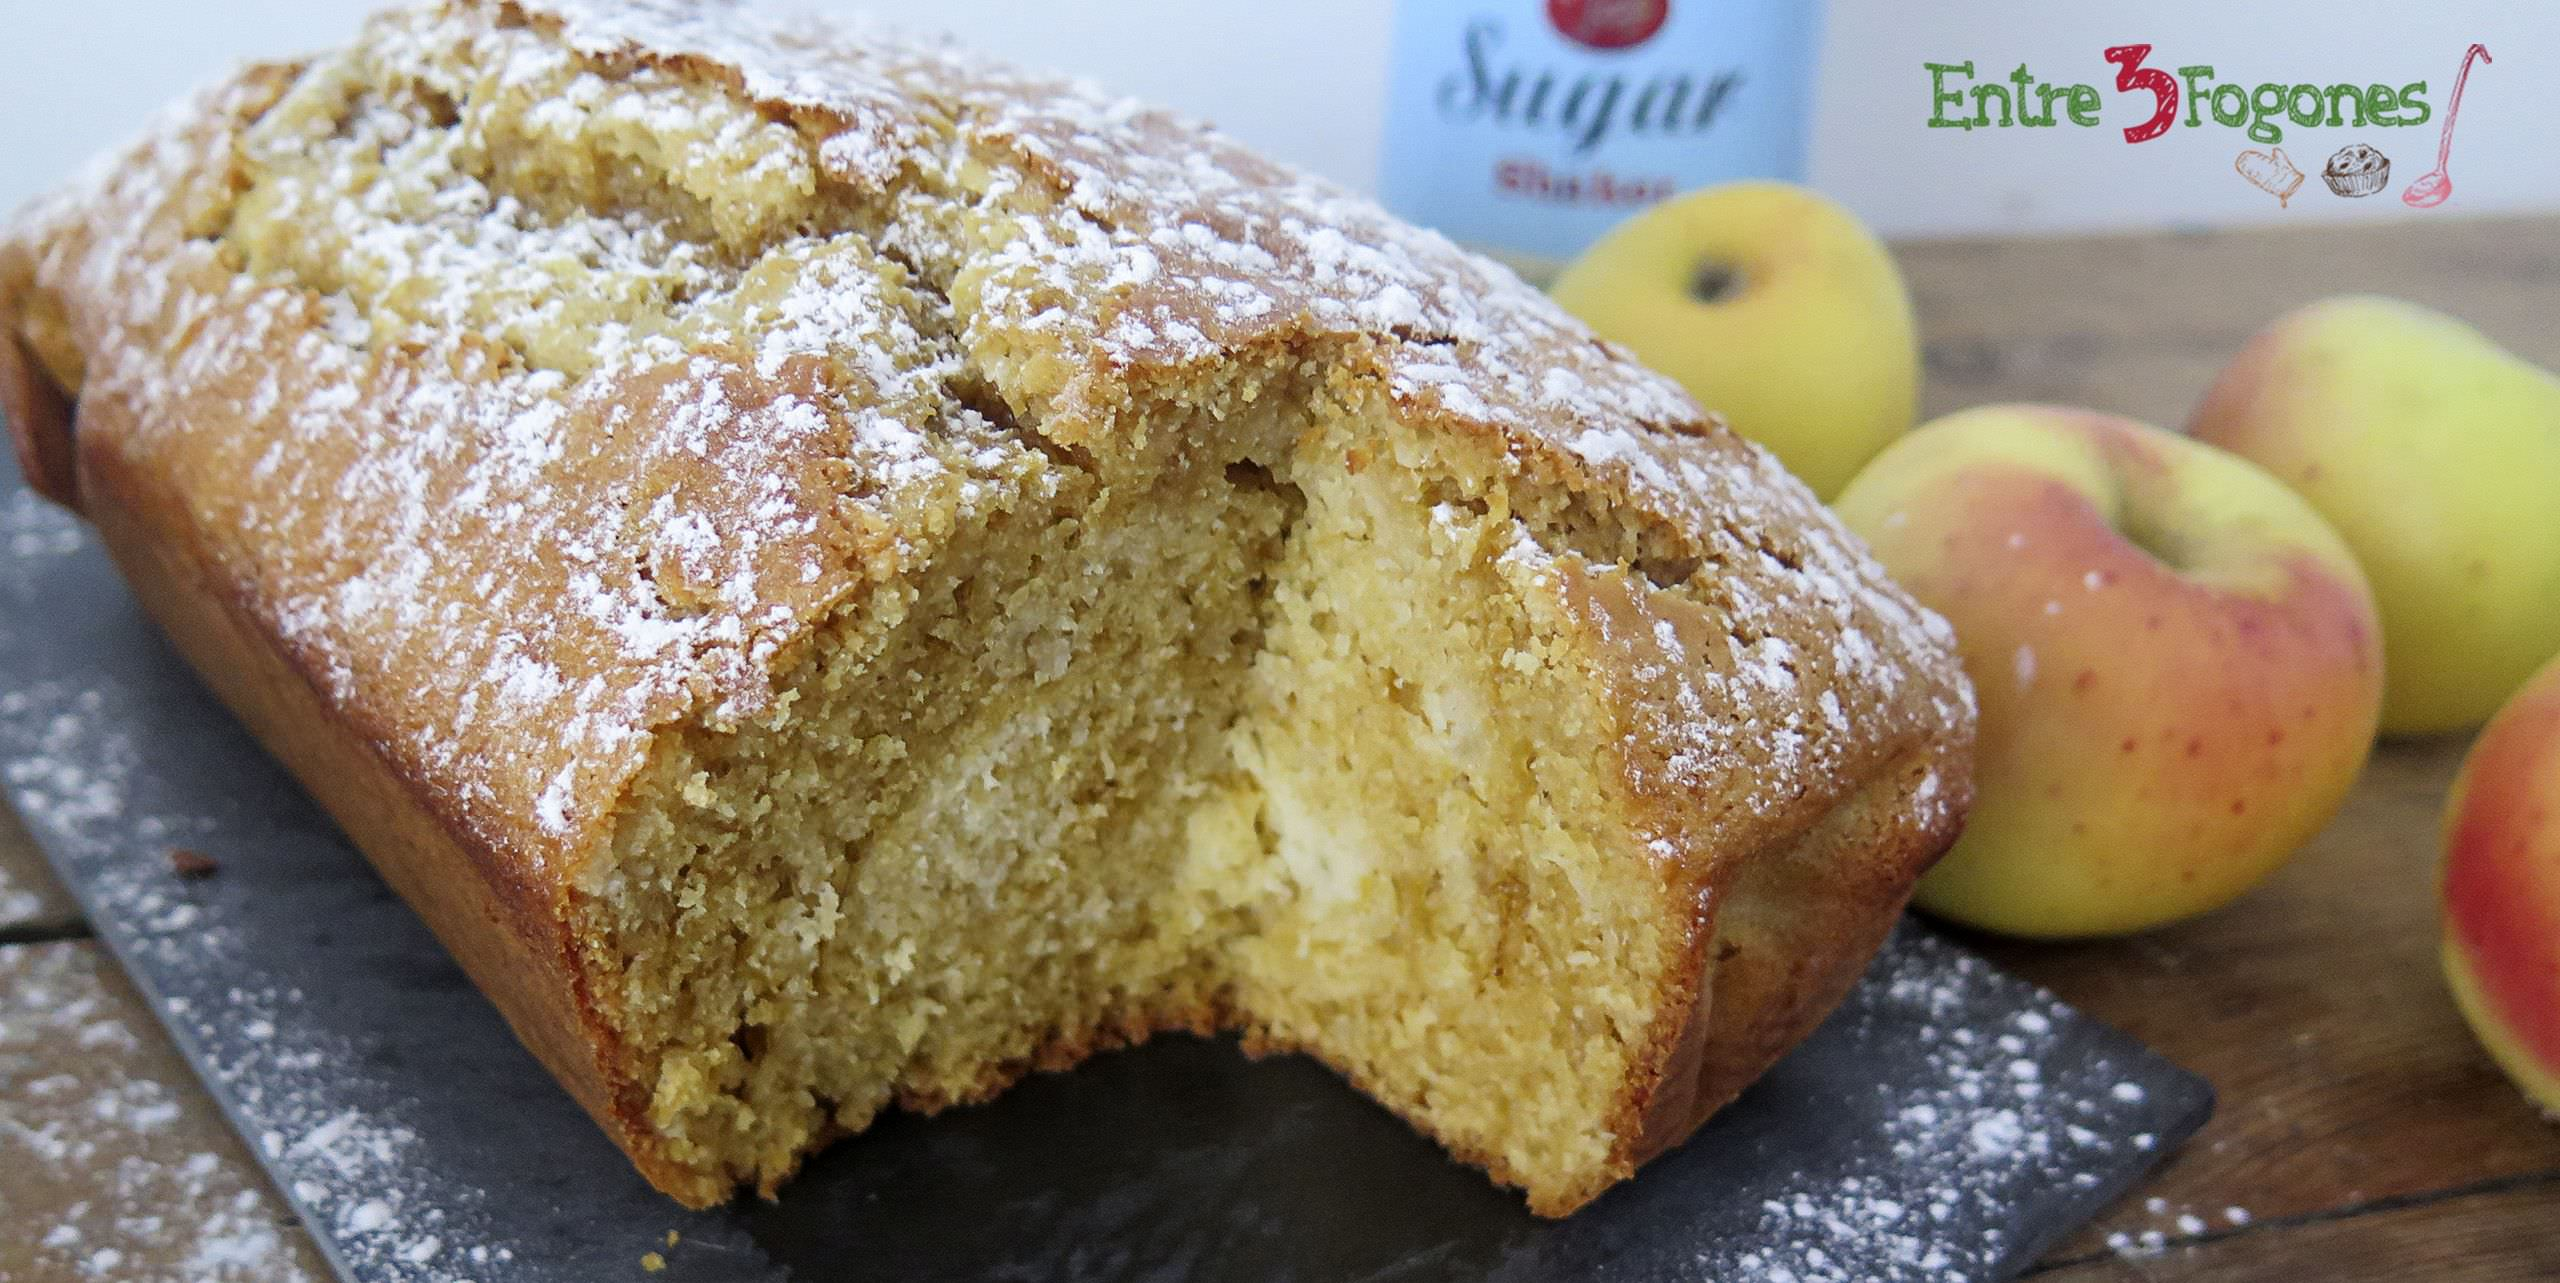 Photo of Cake Marmolado de Manzana y Toffee